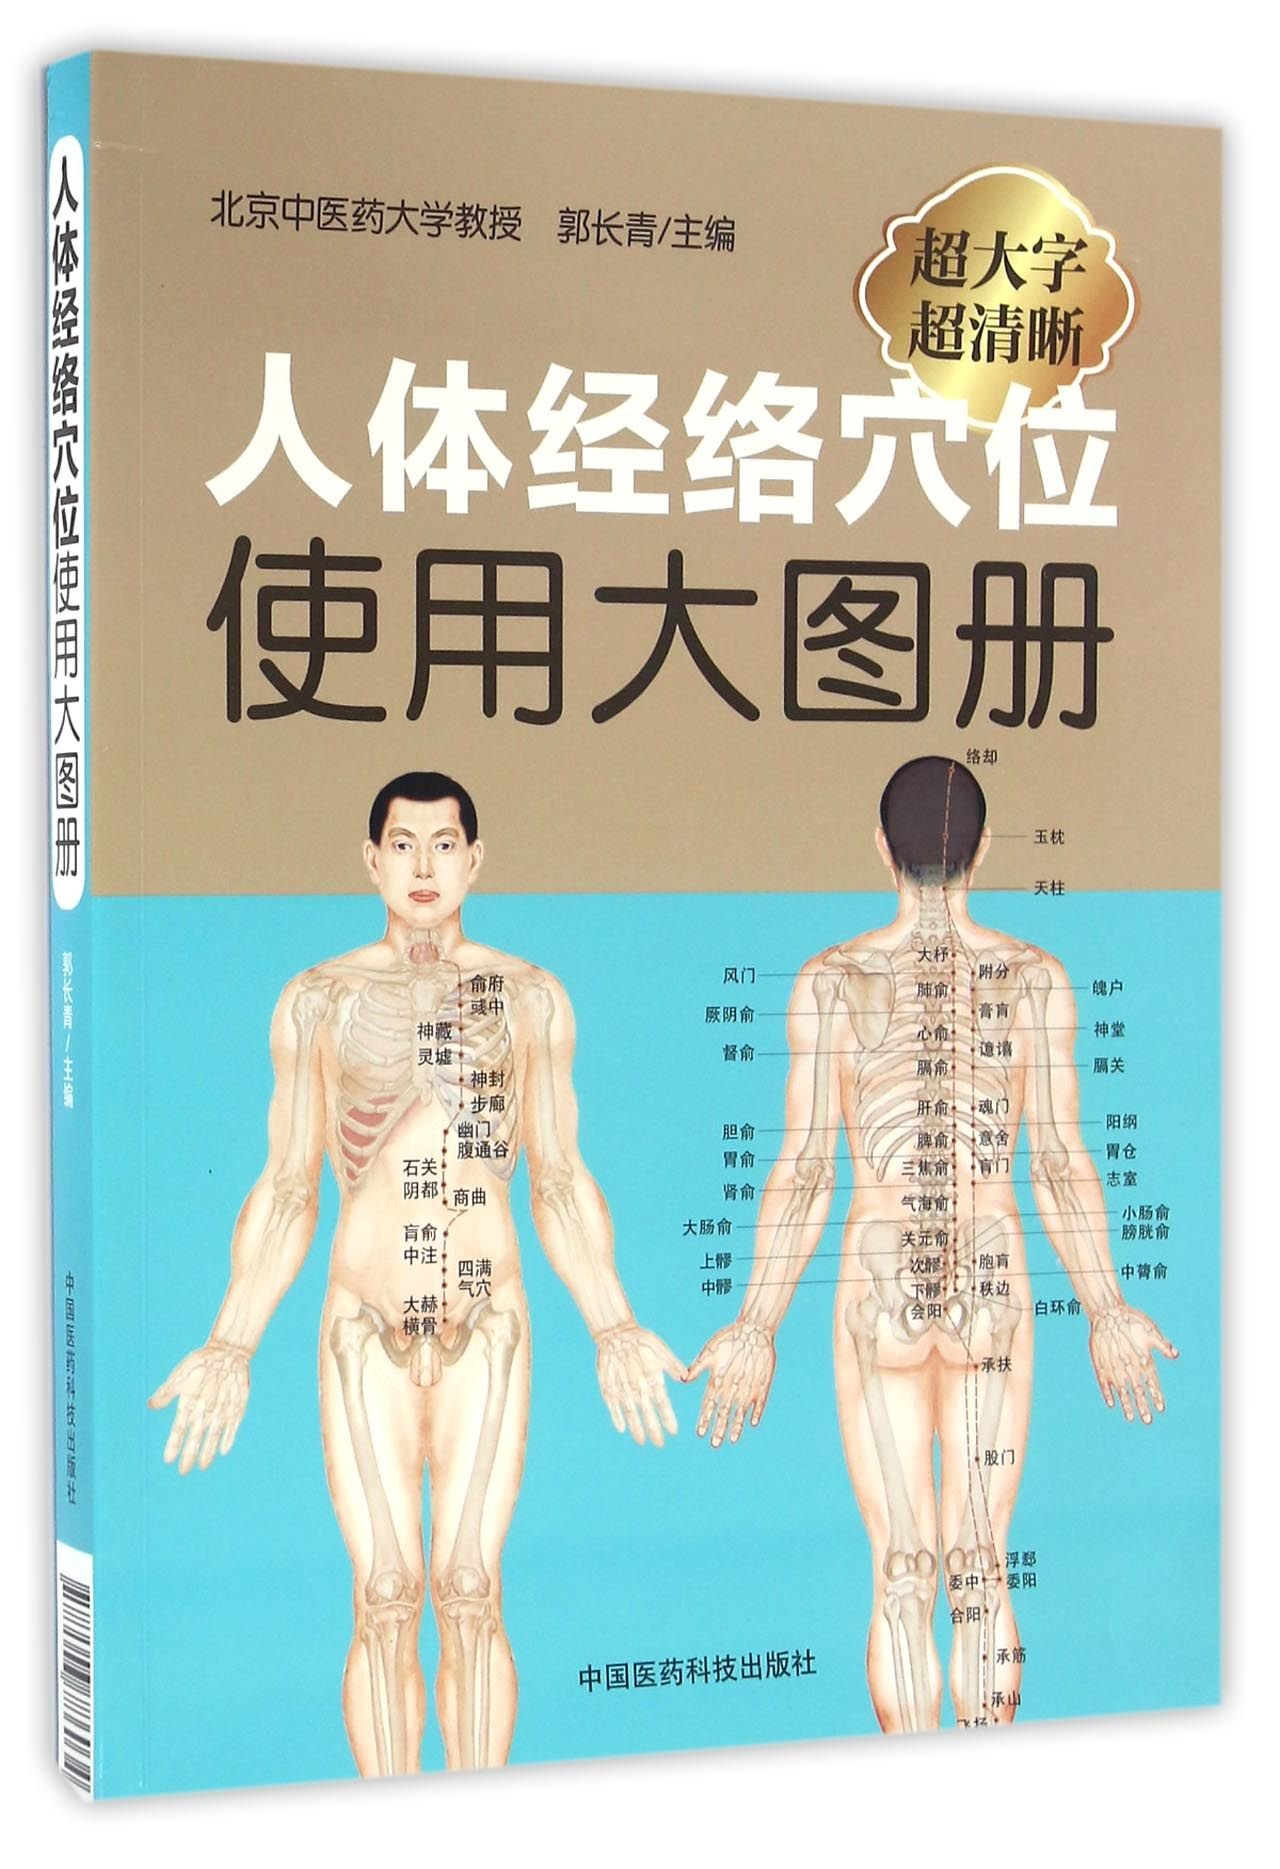 An Illustrated Manual of Human Body Meridian and Acupoints (Chinese Edition) ebook